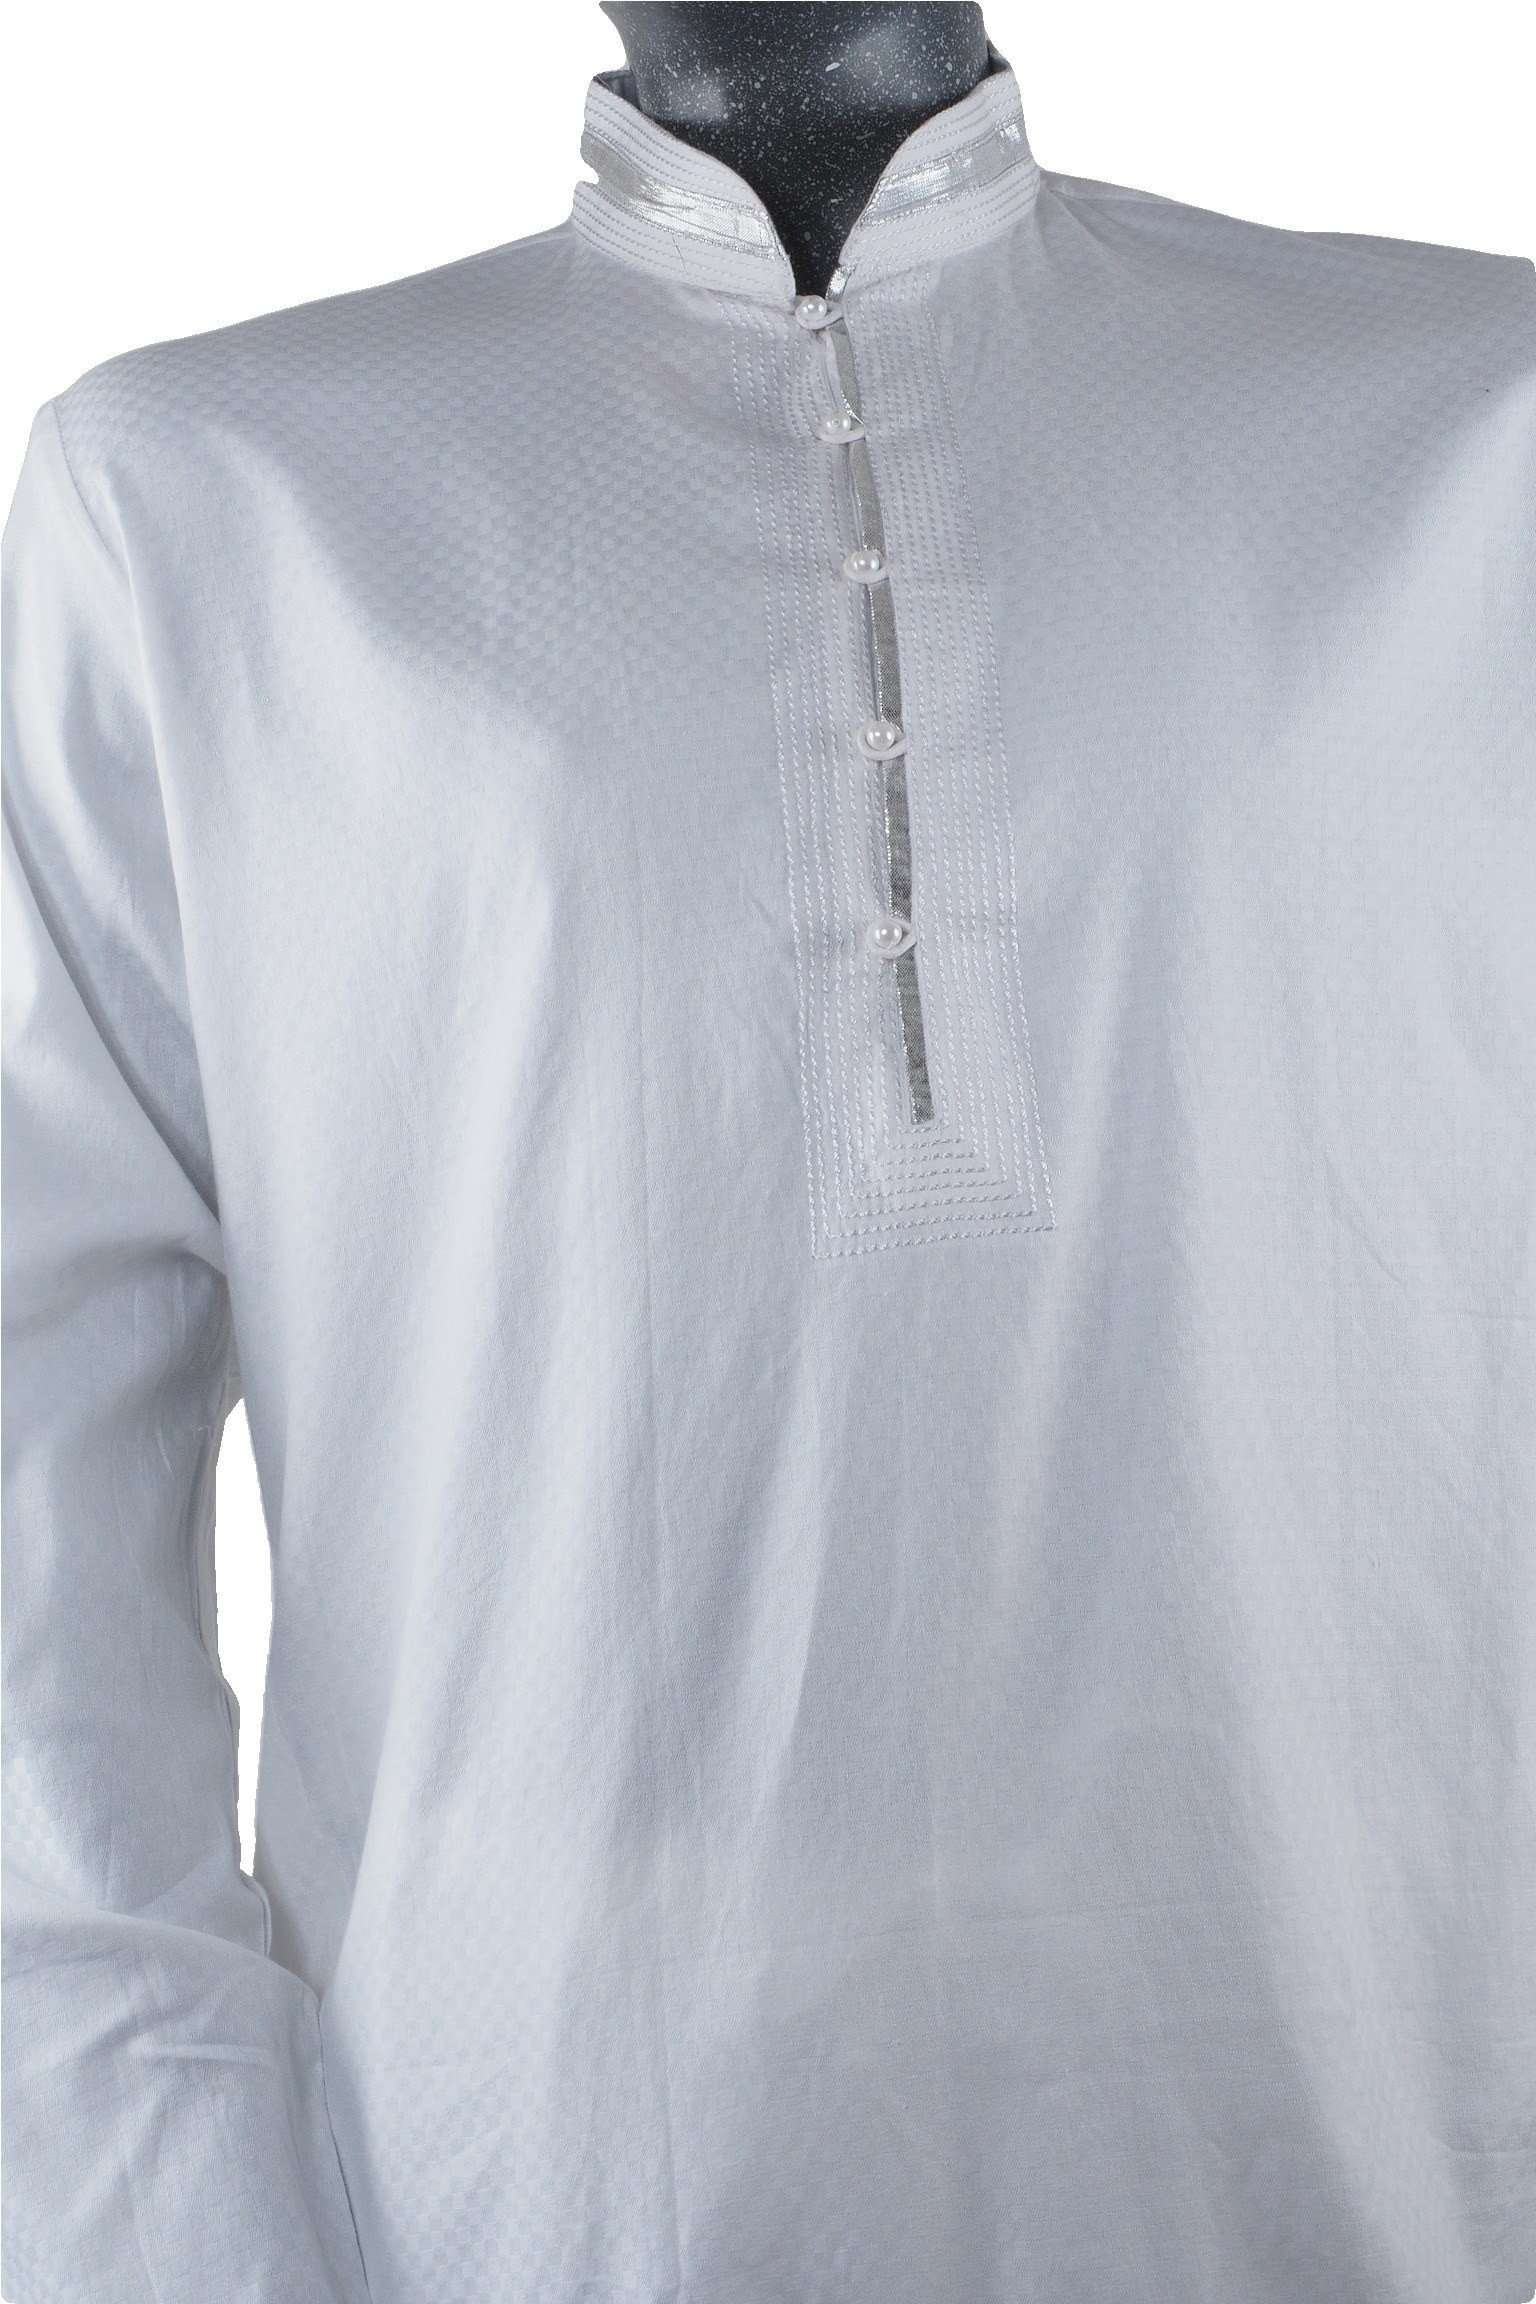 Jagir 3 TY - White Mens Indian Kurta outfit , Bollywood Party, Weddings - Prachy Creations